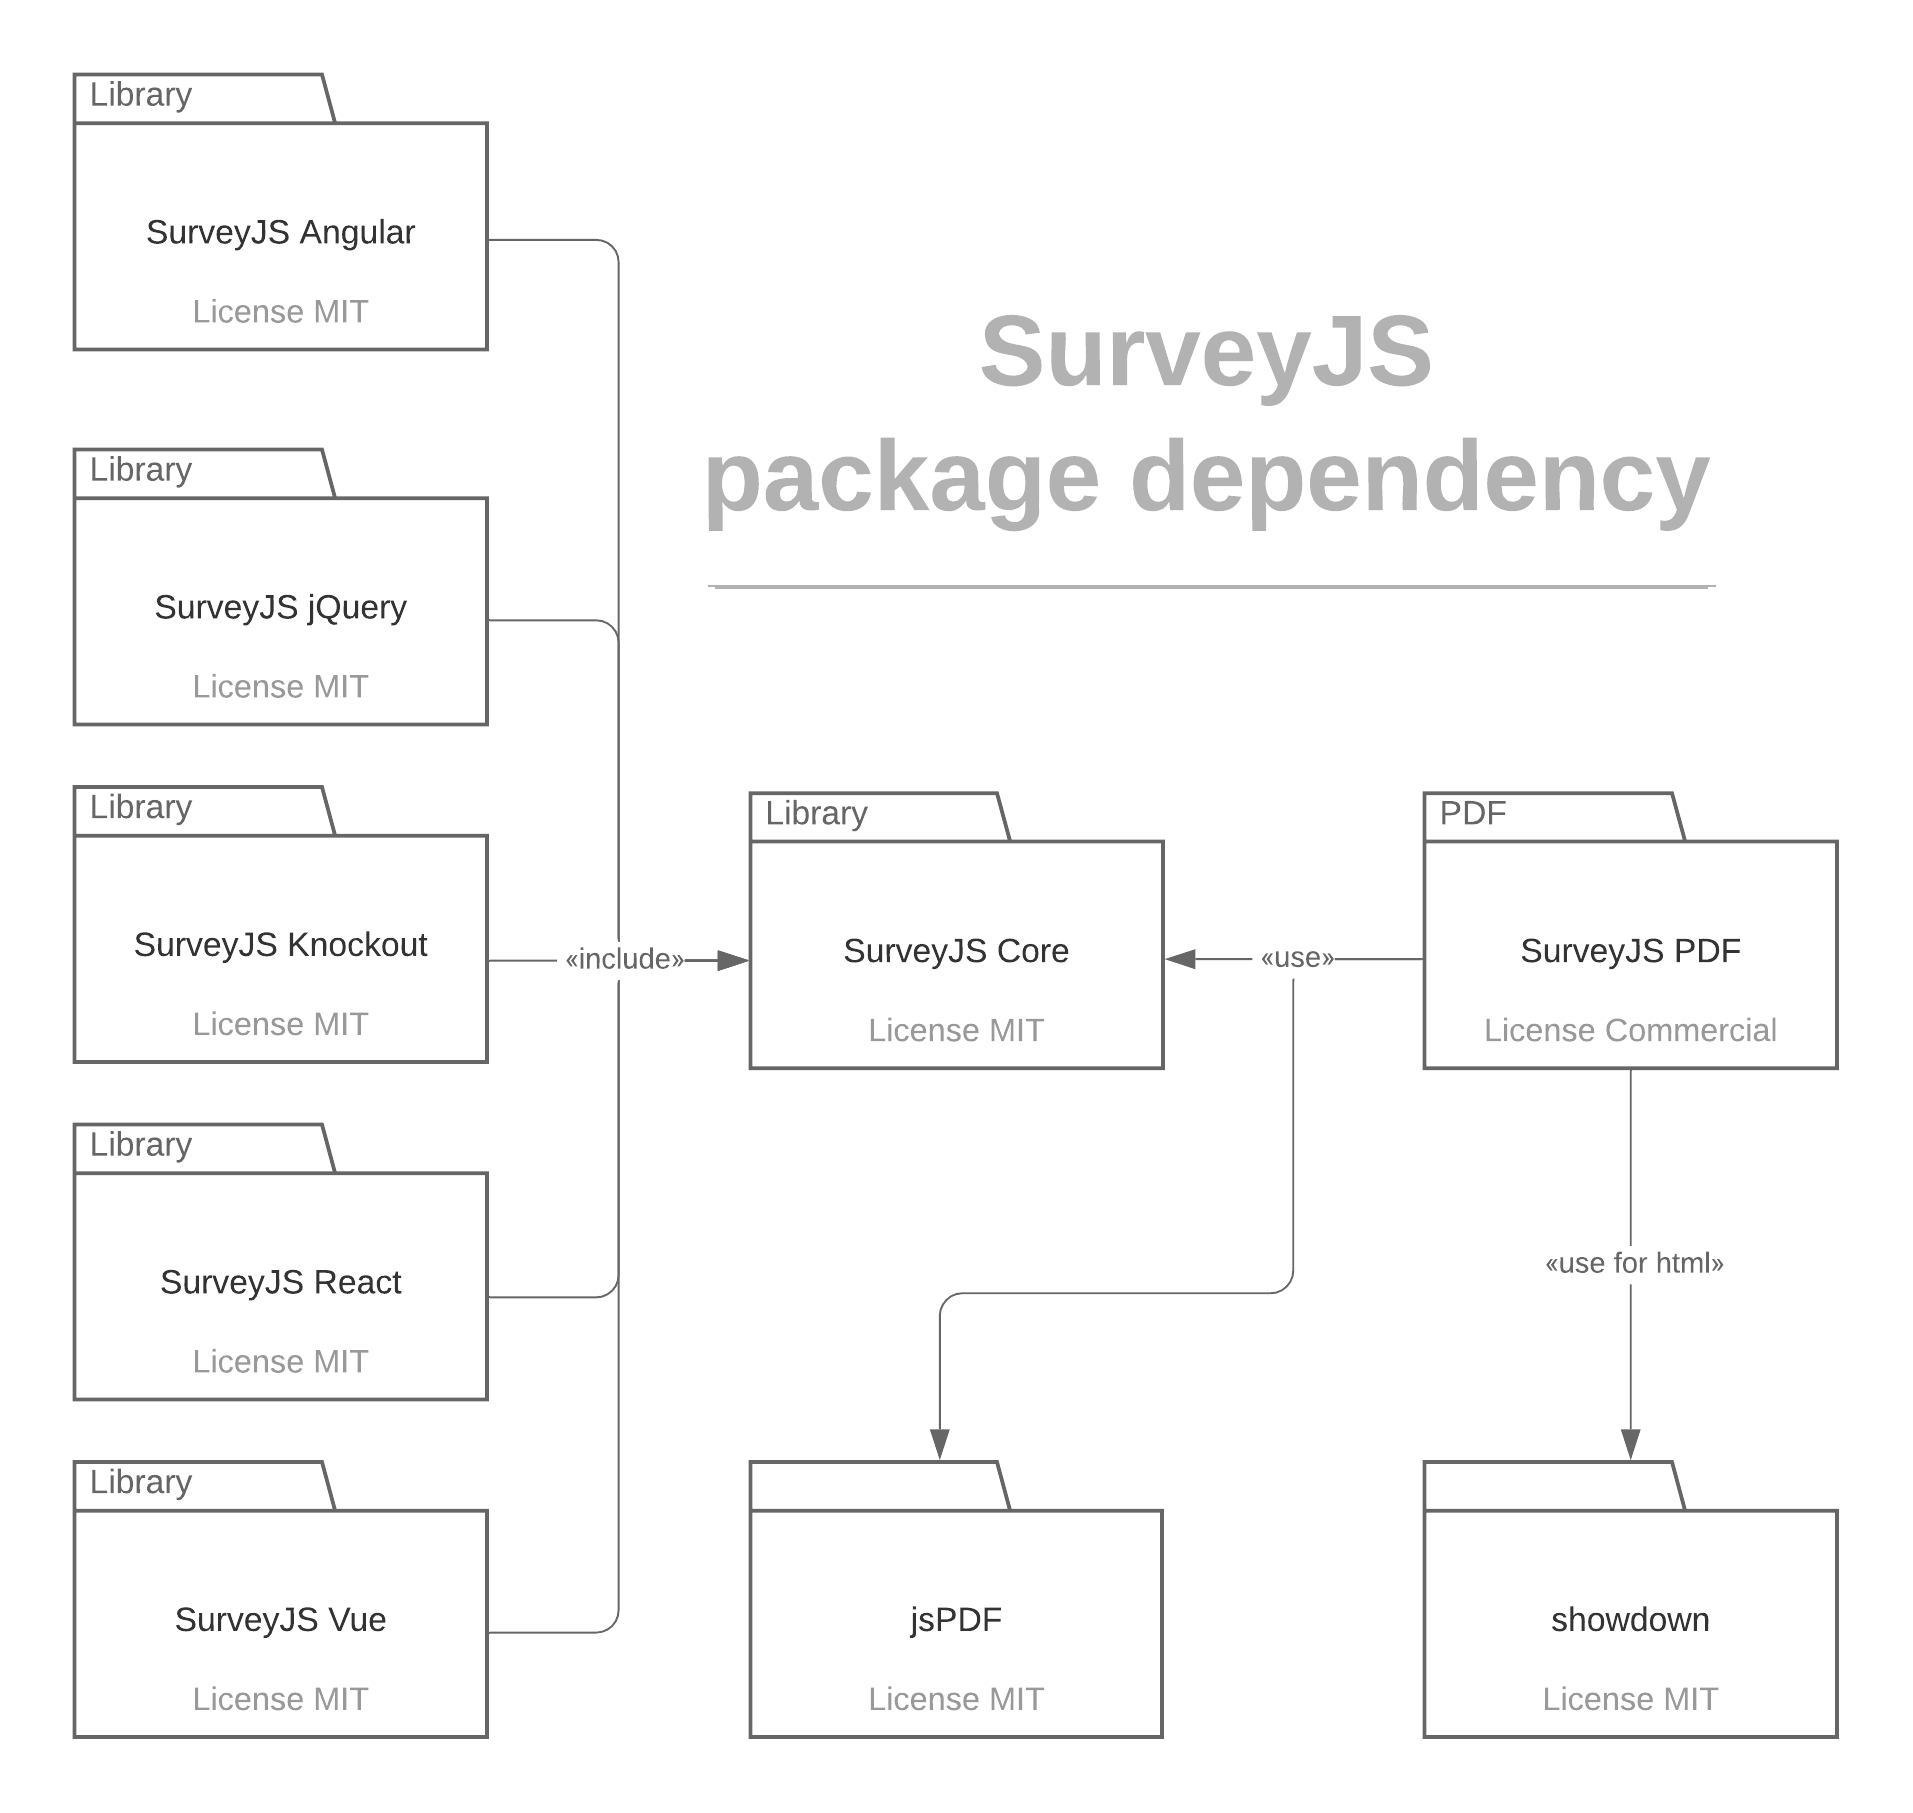 SurveyJS package dependency